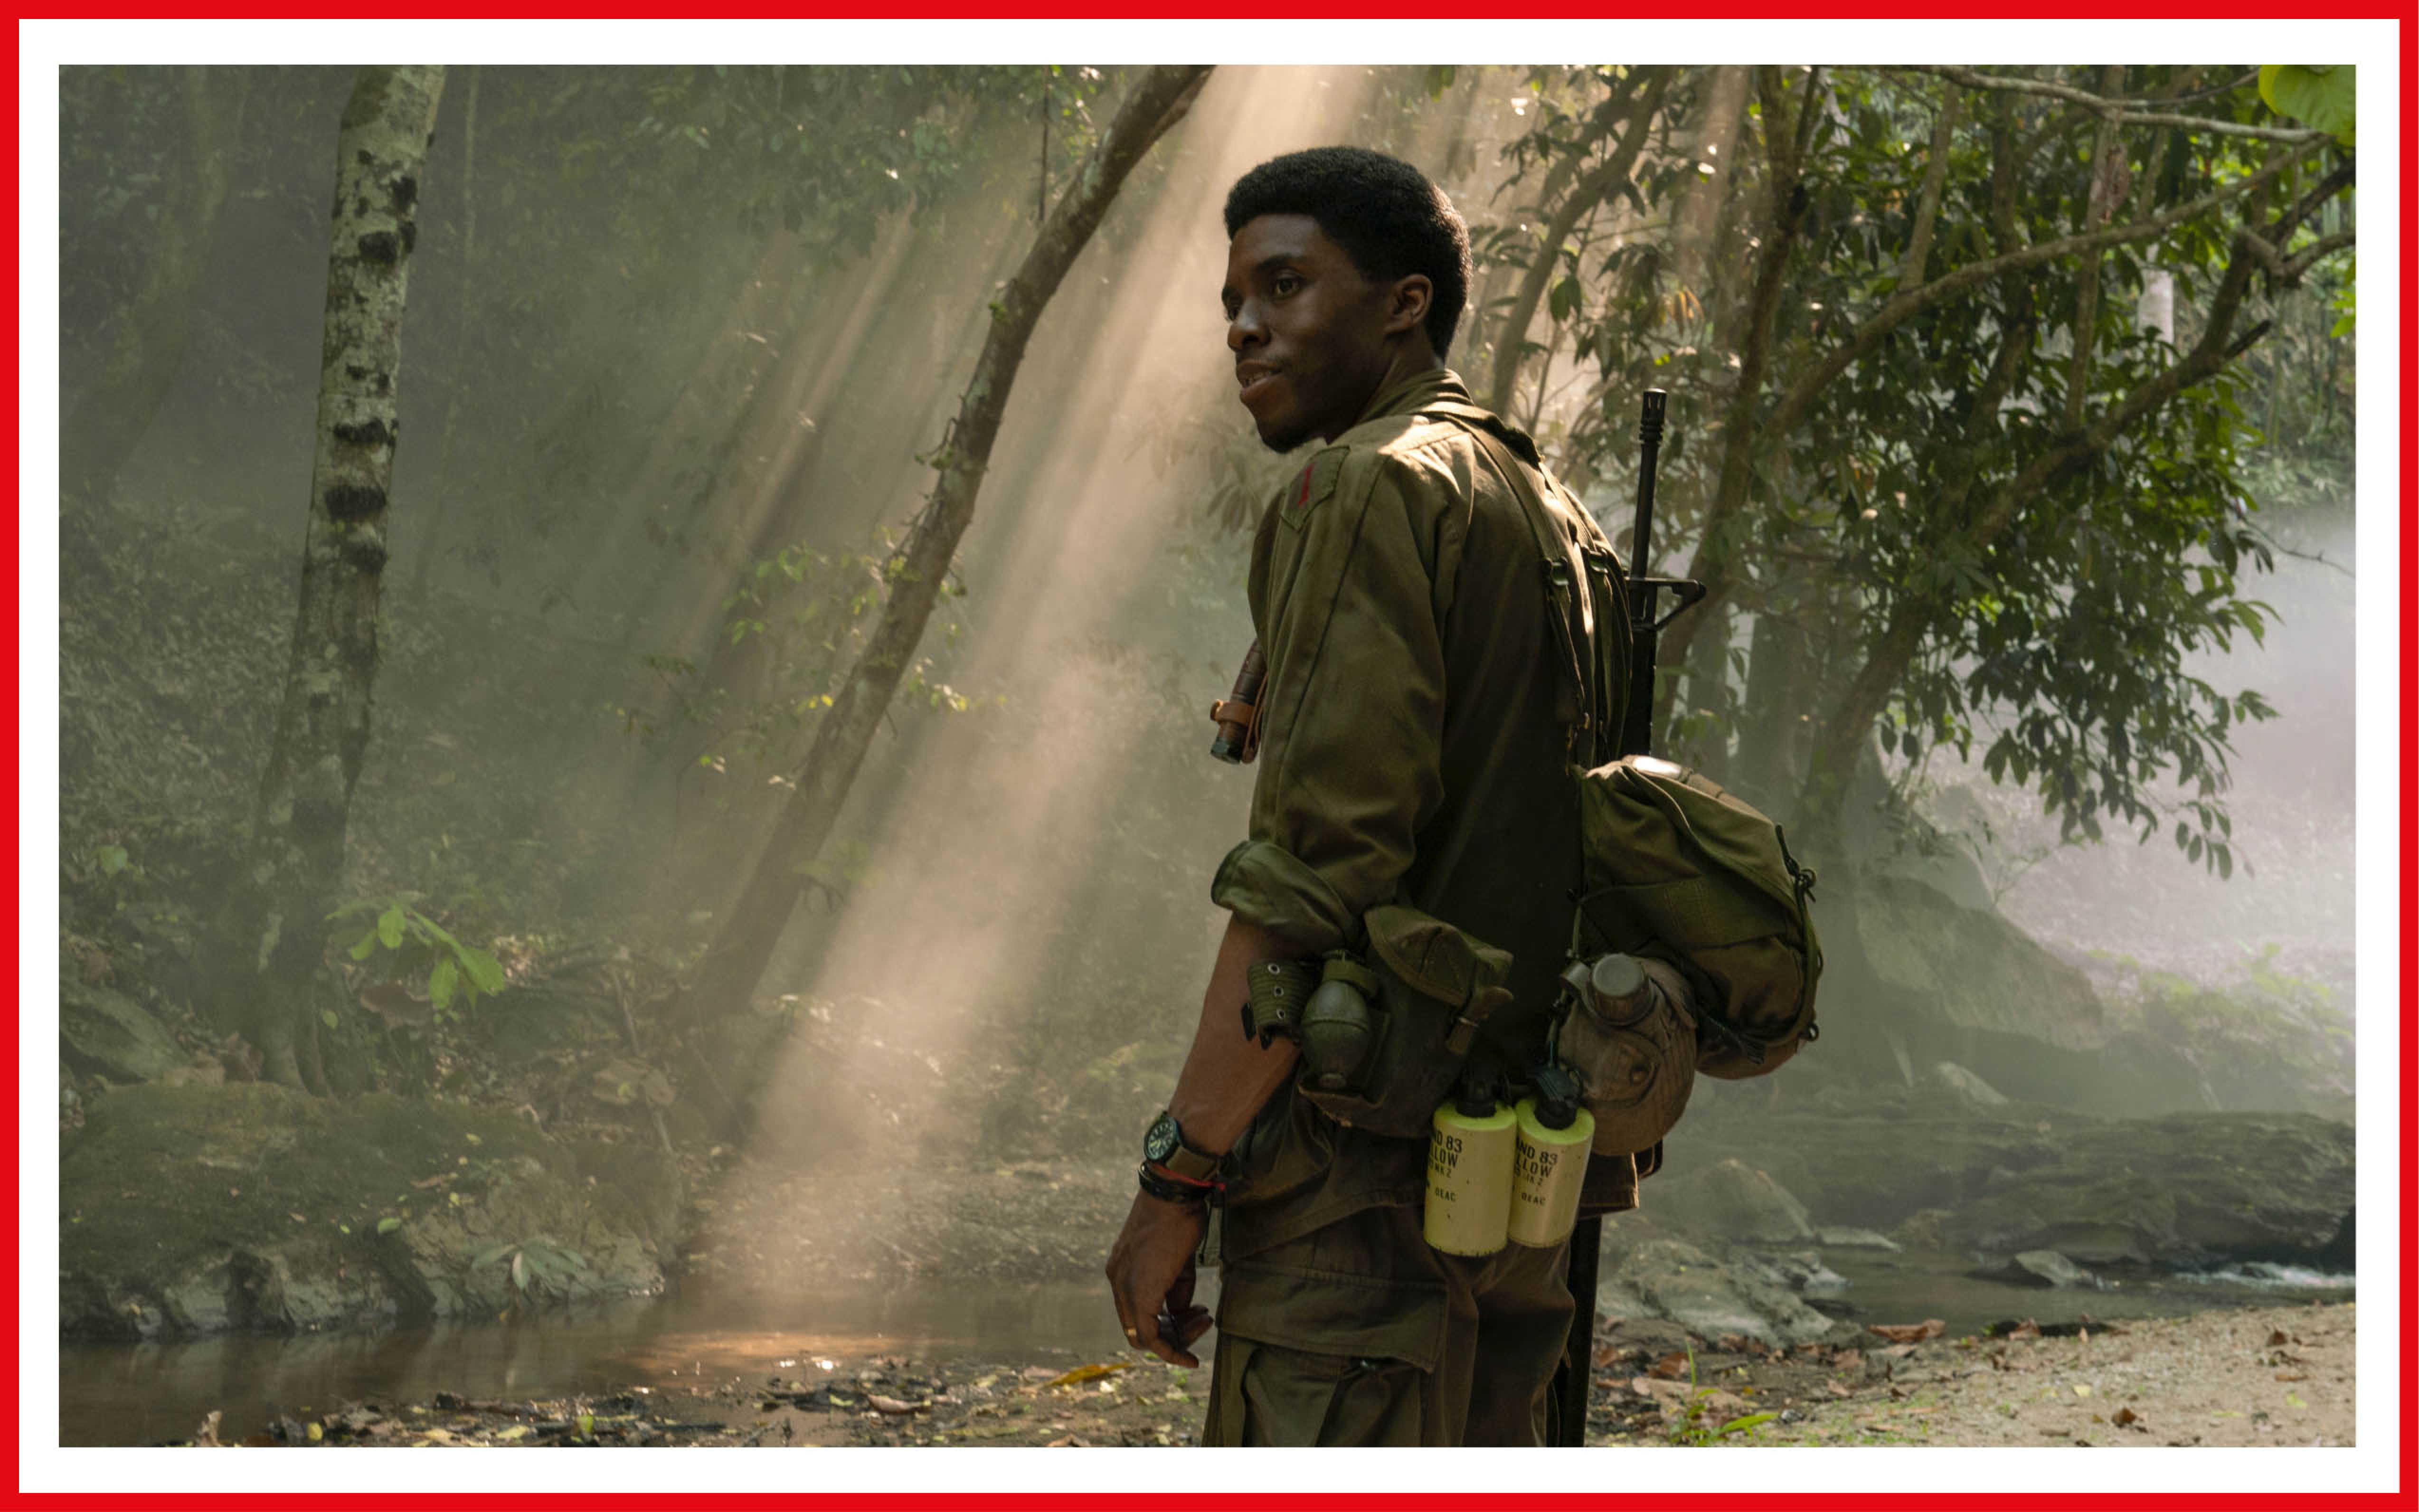 Chadwick Boseman is dressed in military fatigues and standing in dappled jungle light during one of the film's flashback sequences